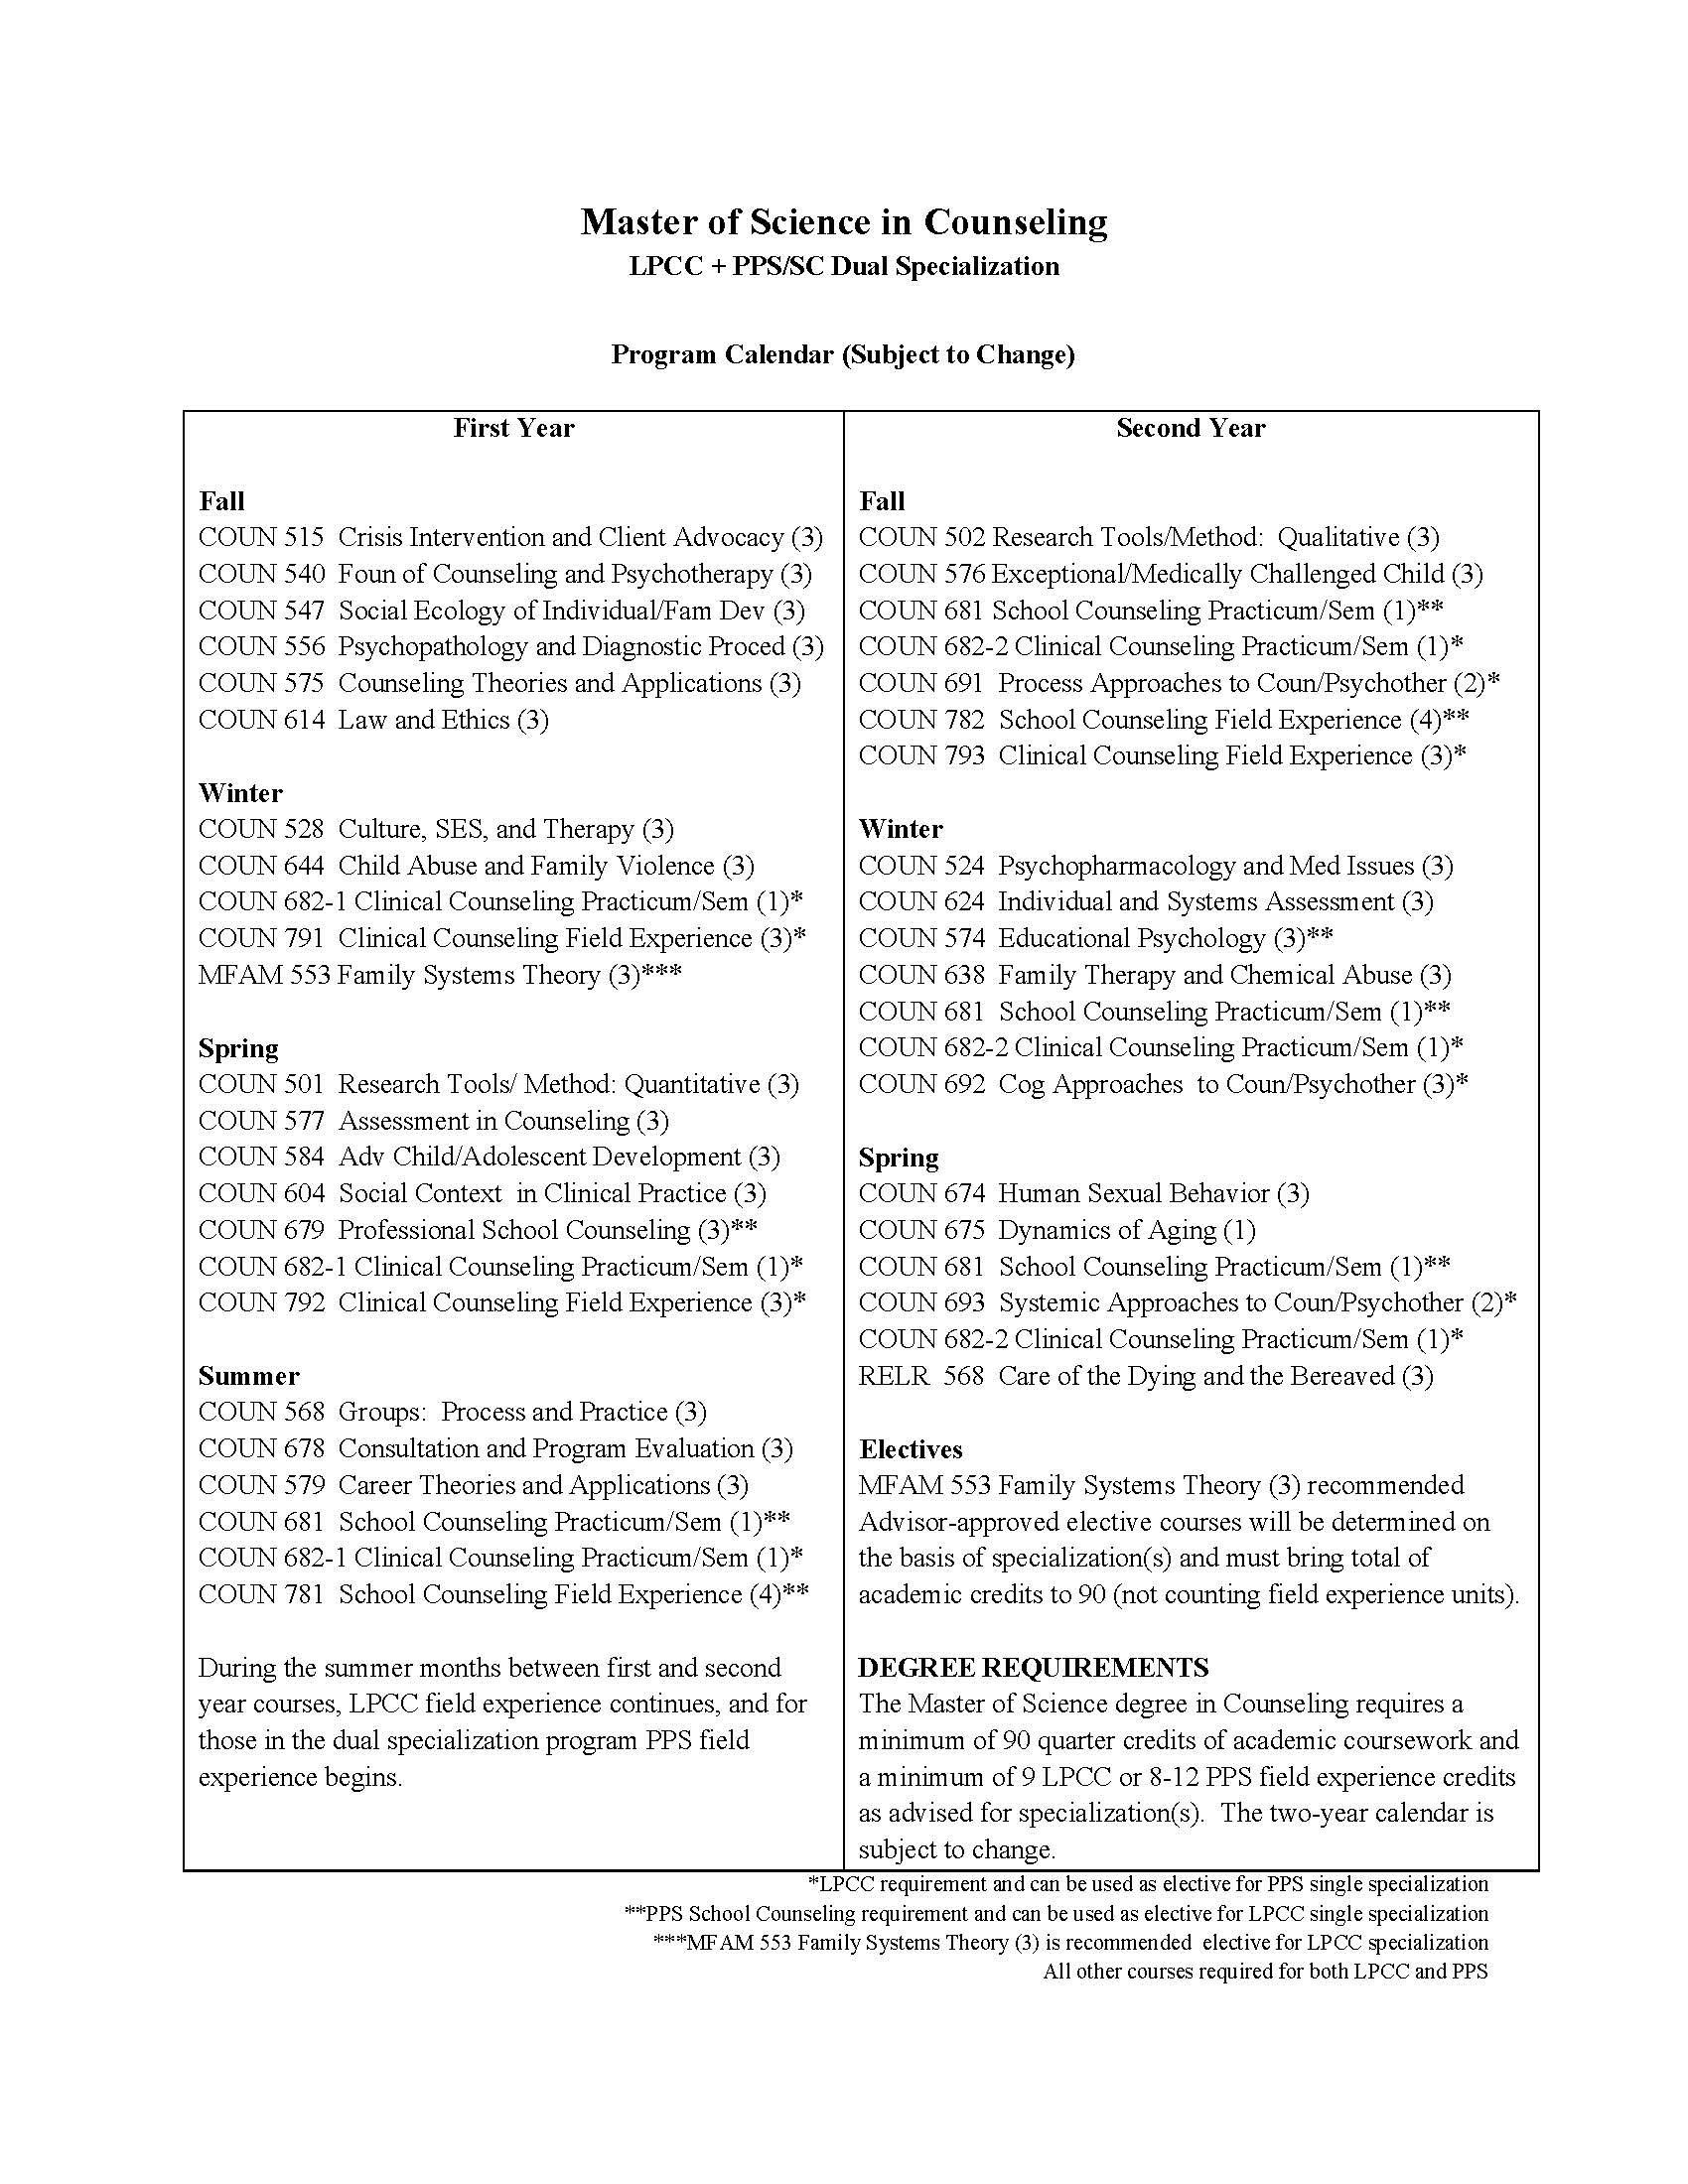 MS Counseling Two-Year Program Calendar